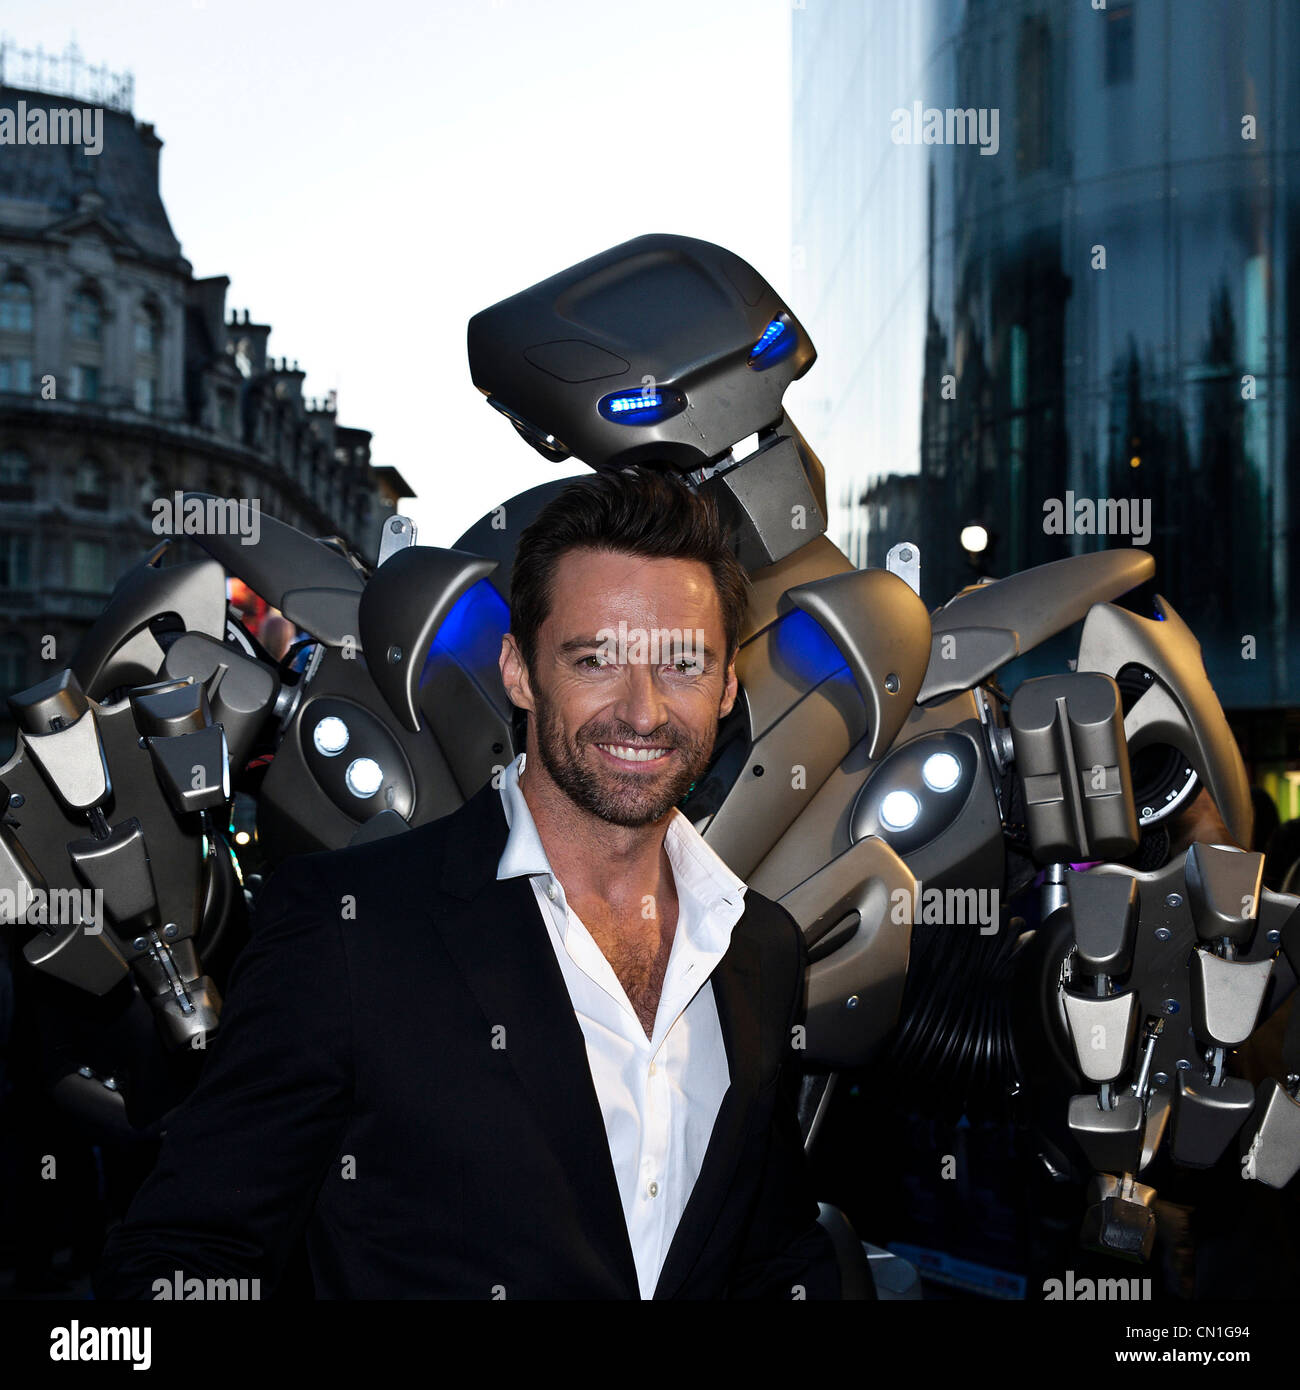 14/09/2011. The Empire, Leicester Square, London, Uk. Actor Hugh Jackman attends the UK Premiere of Real Steel. - Stock Image